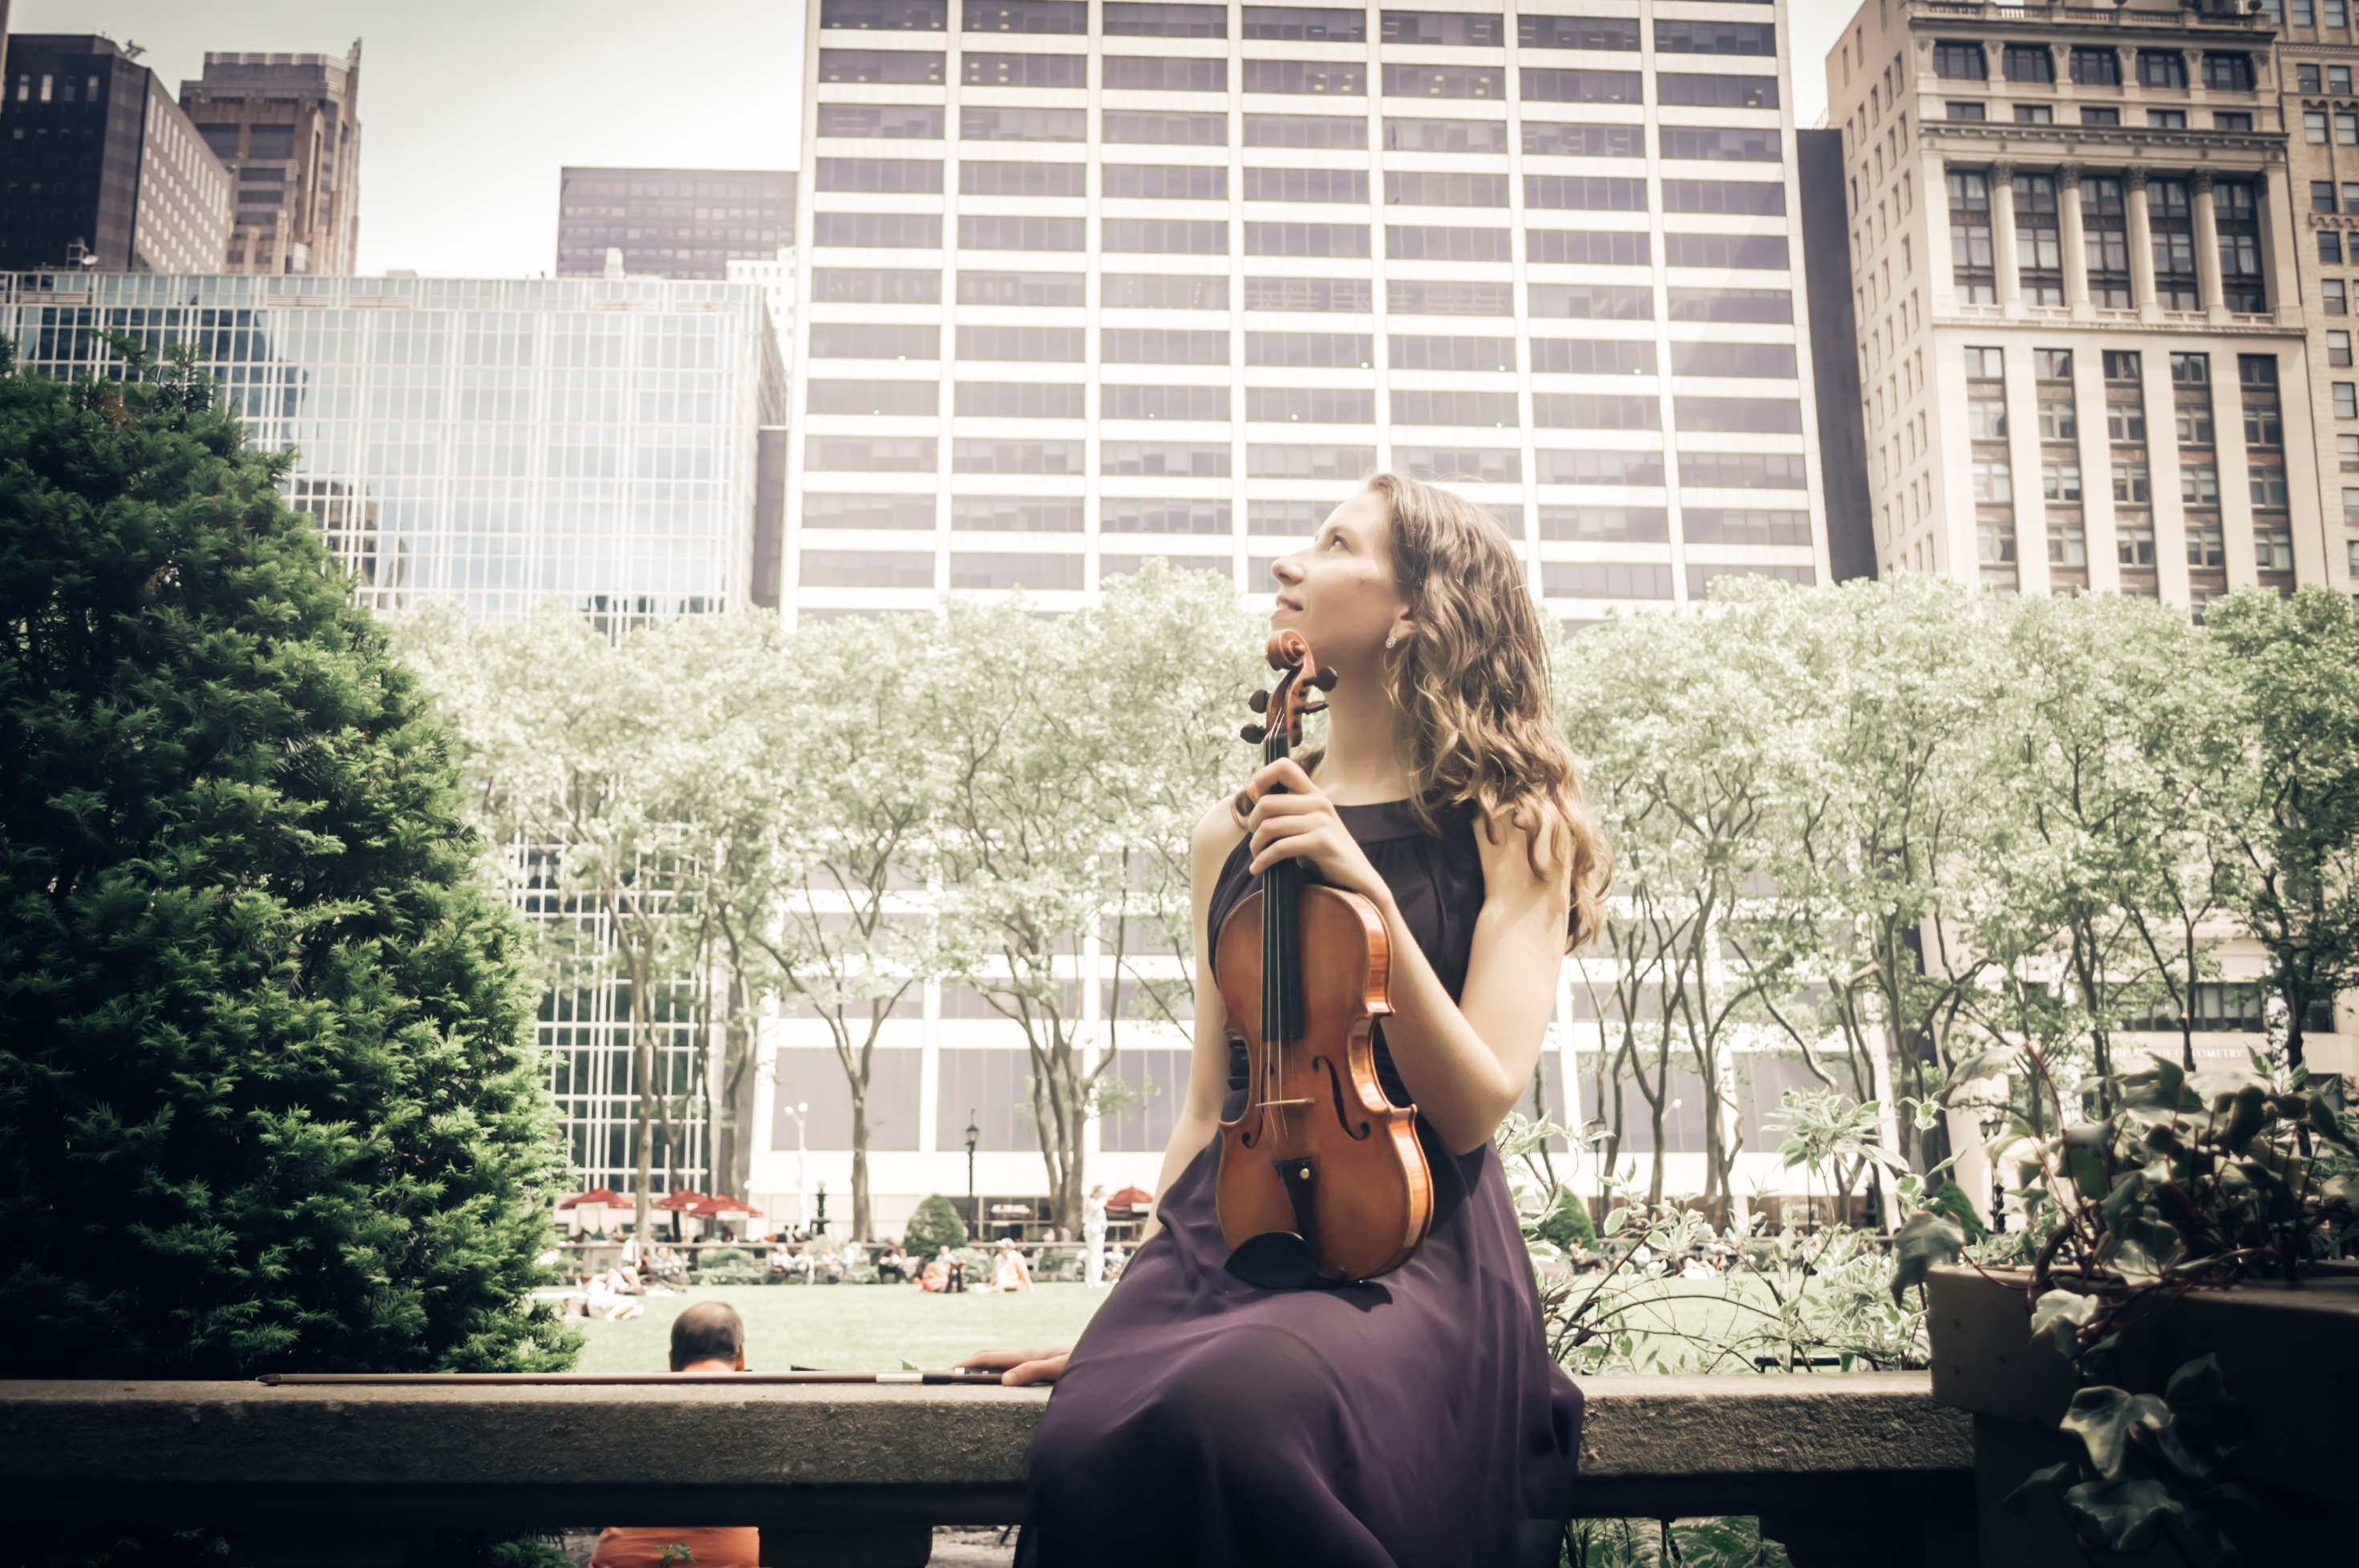 Laura Giannini Violinist, contemplation at Bryan Park, New York